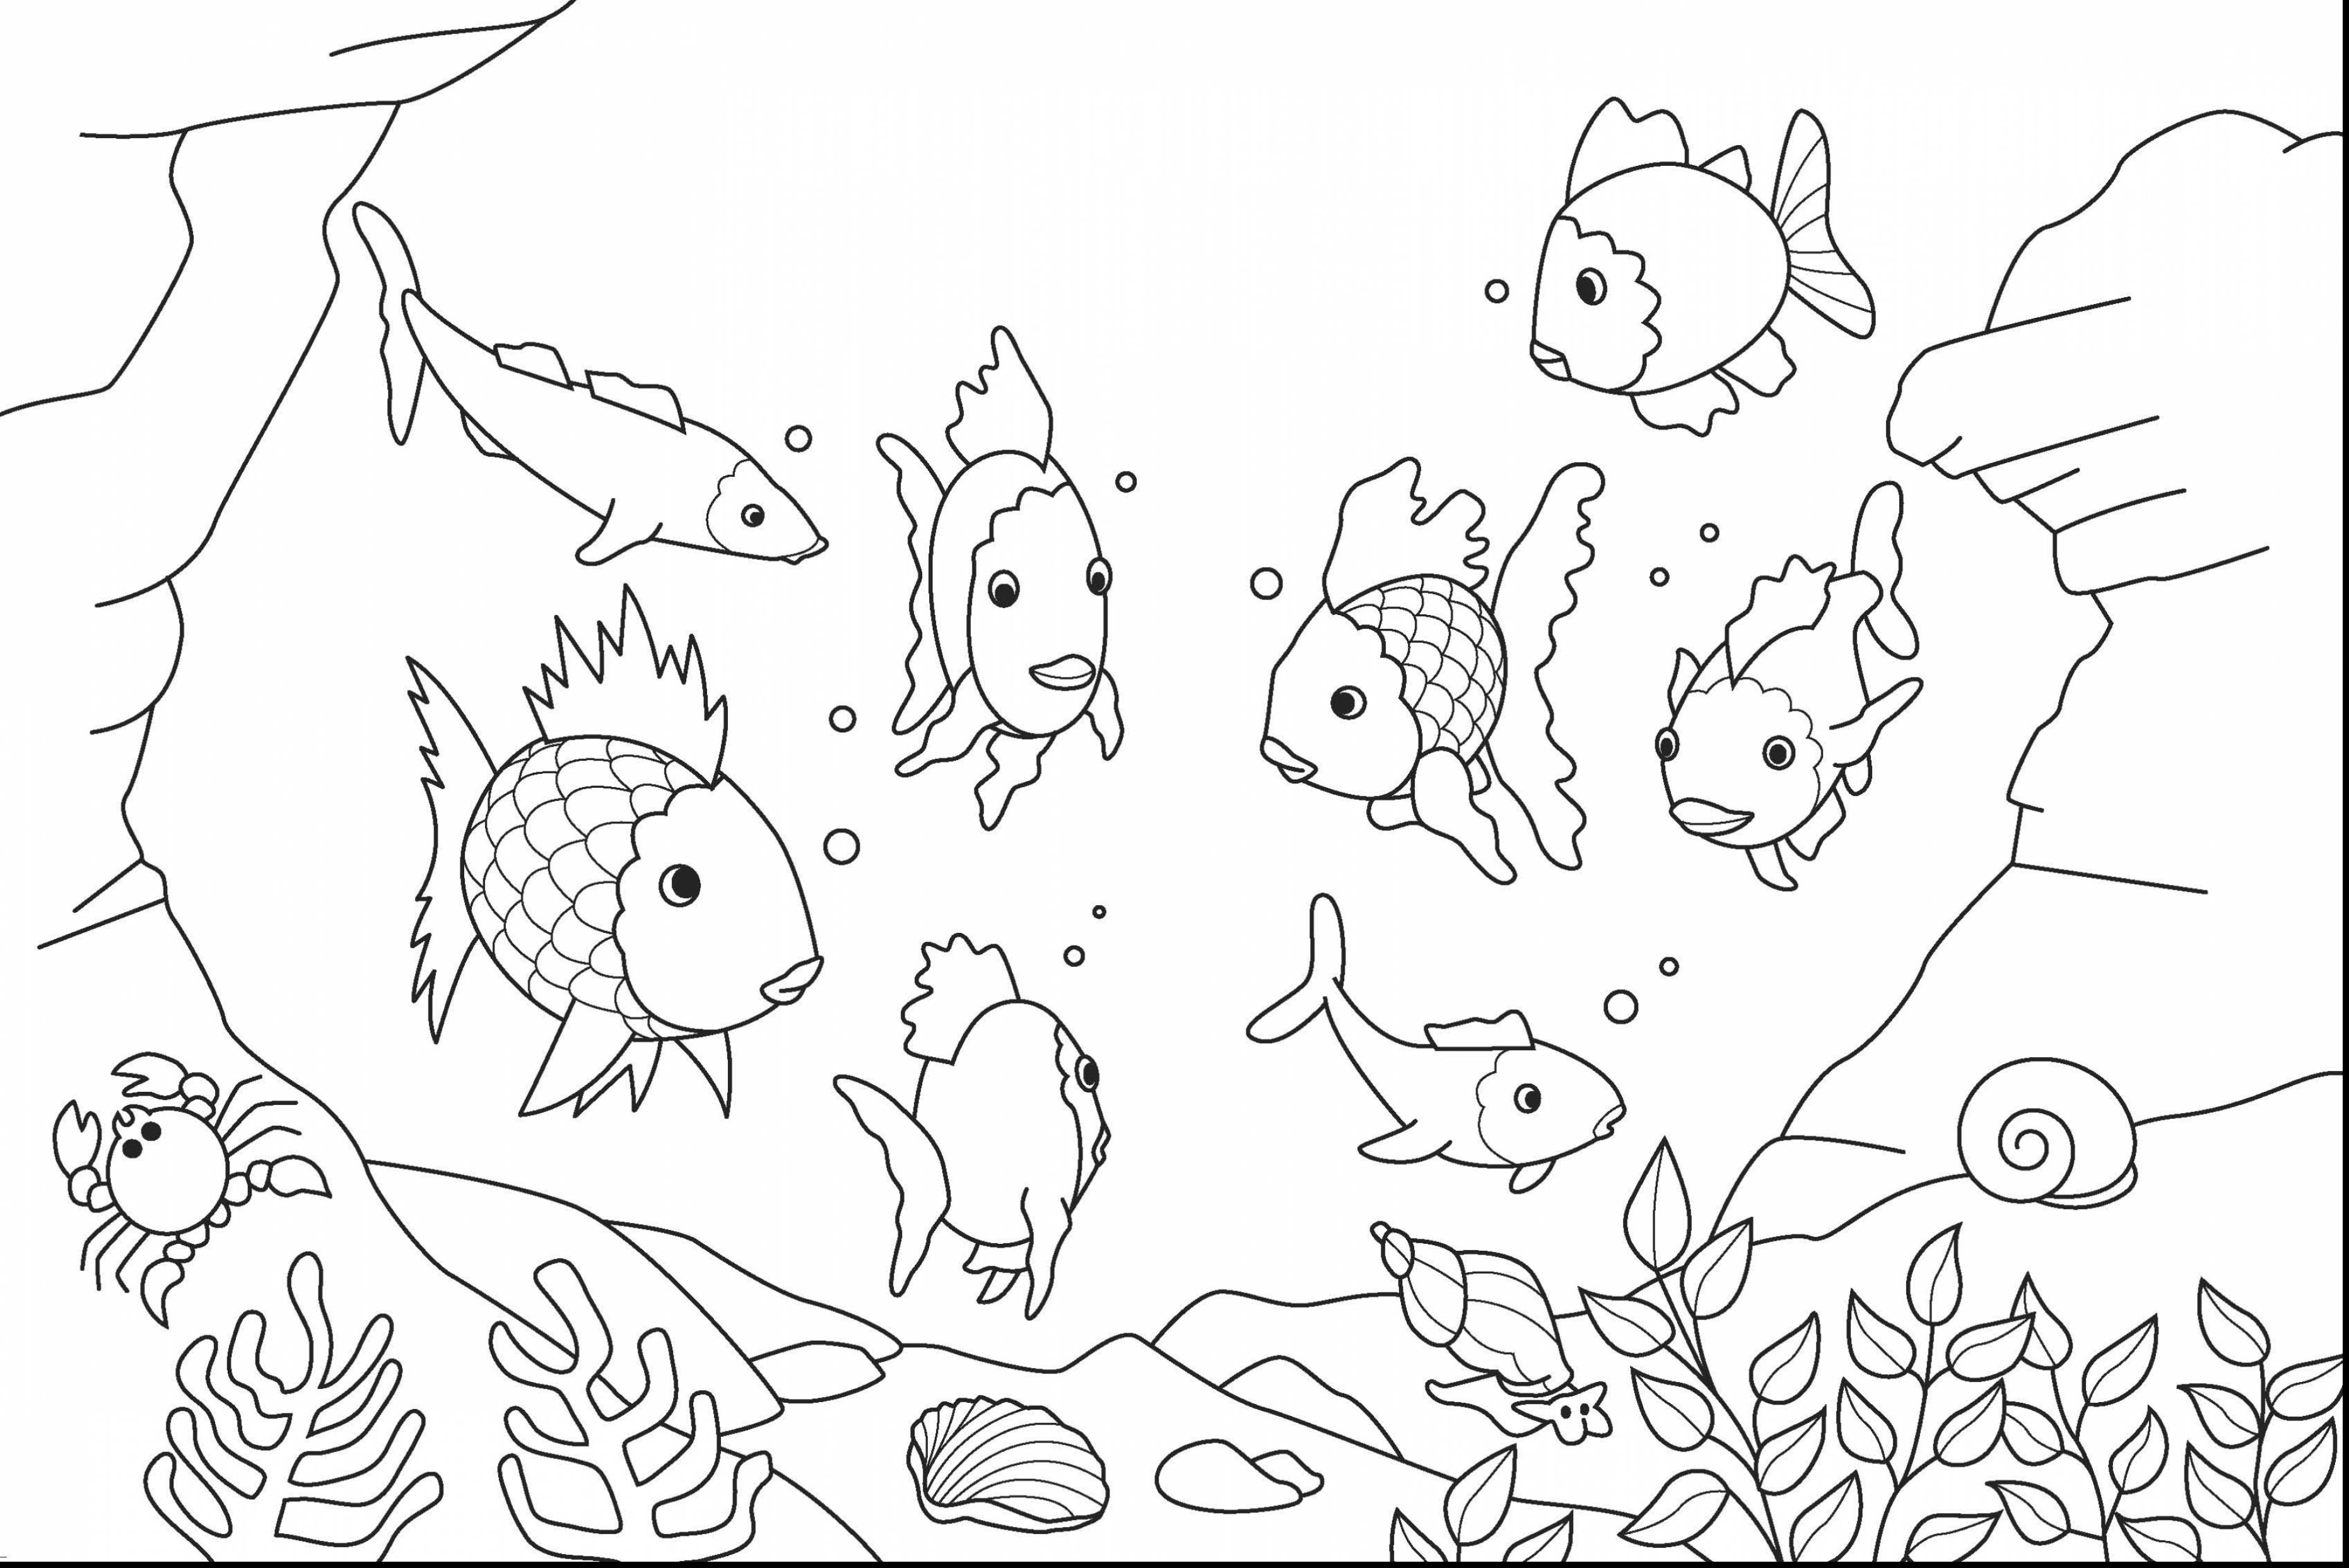 detailed fish coloring pages fish coloring pages colouring adult detailed advanced fish coloring pages detailed